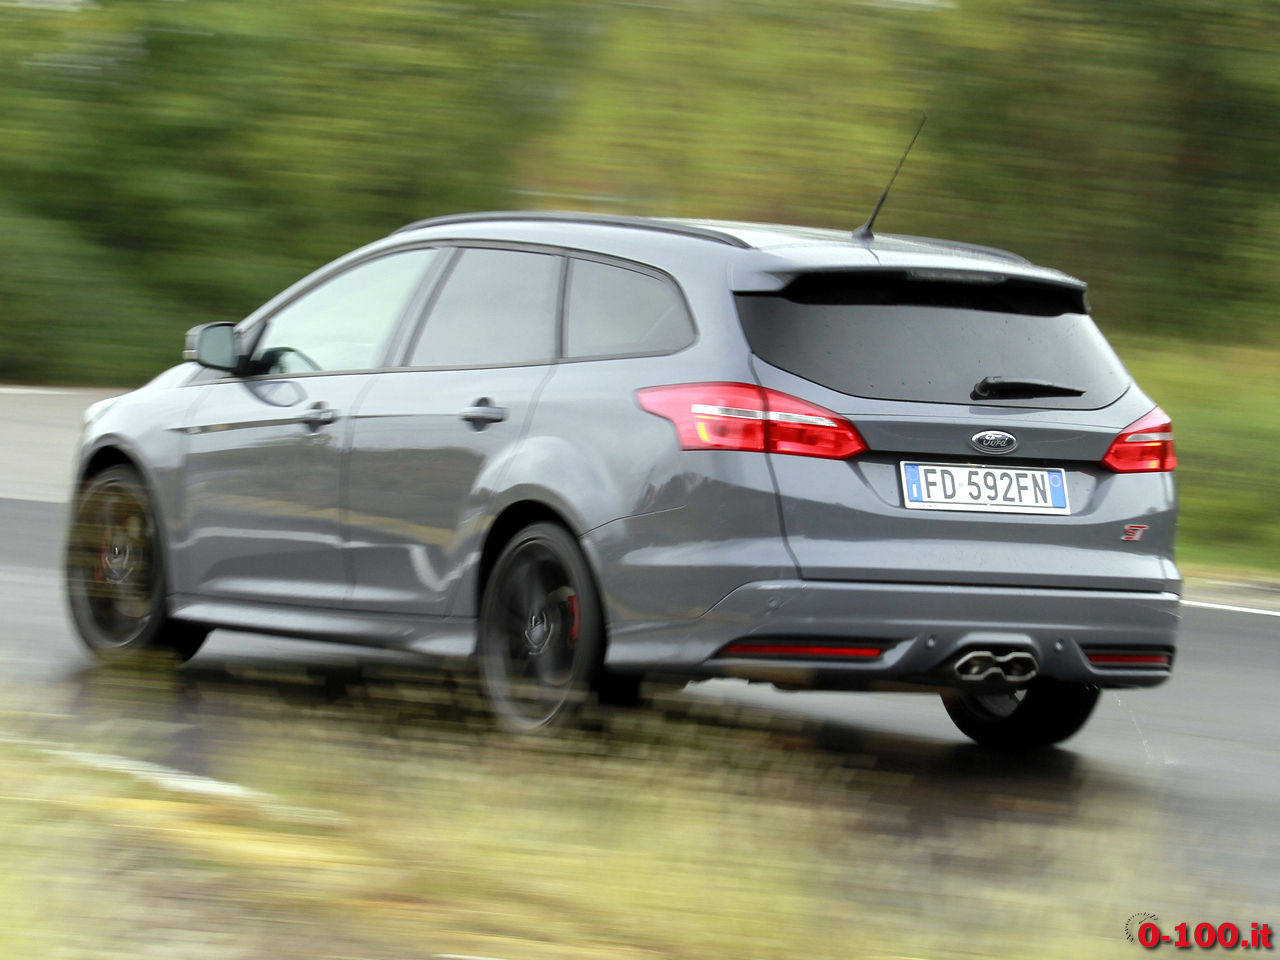 test-drive-ford-focus-dci-st-station-wagon_0-100_13